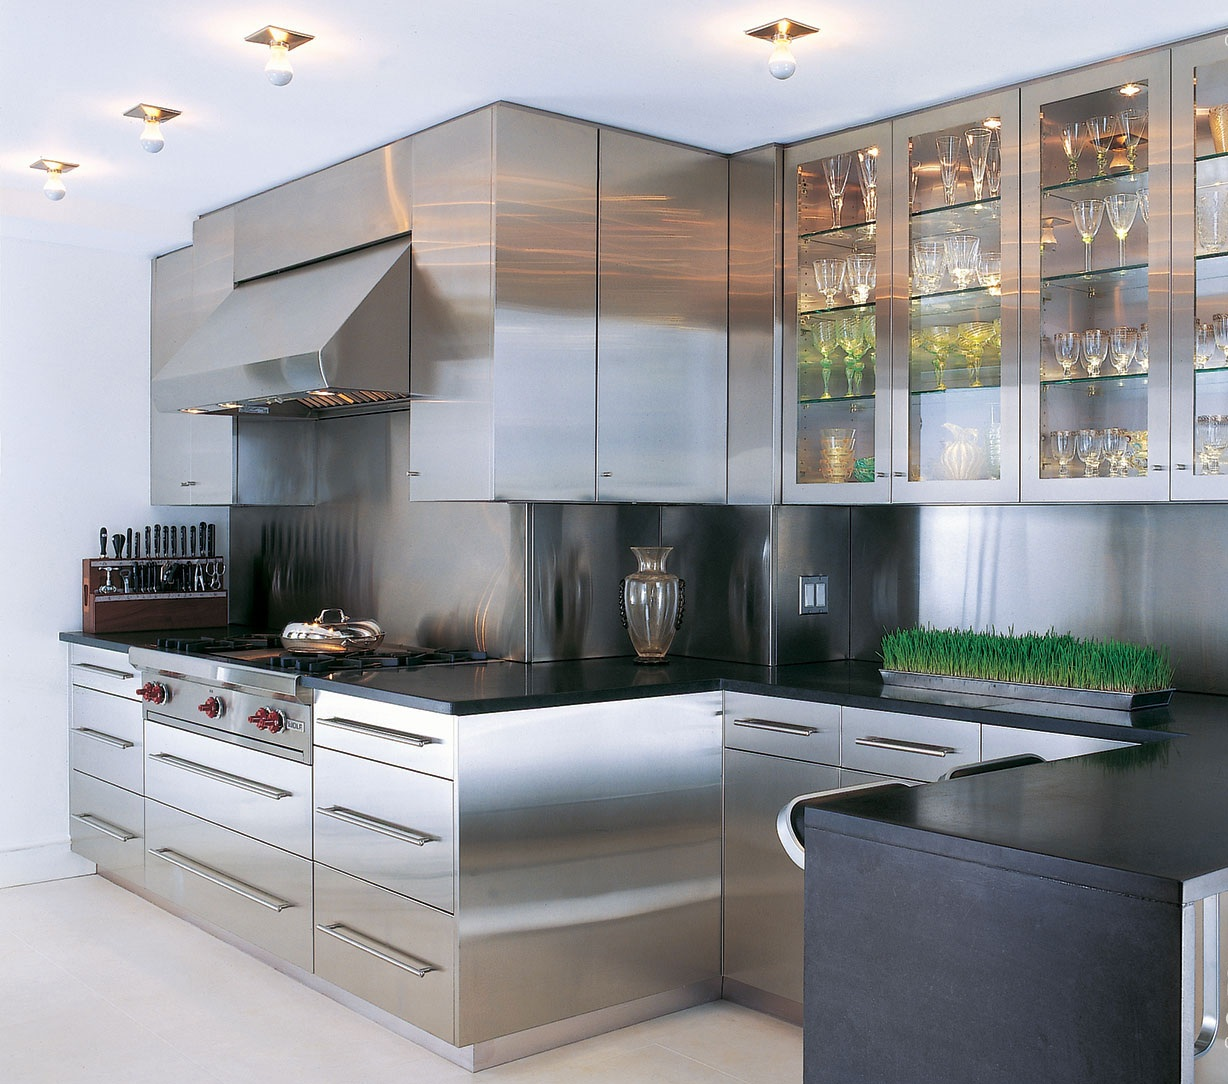 Material For Kitchen Cabinet: Stainless Steel Kitchen Cabinets